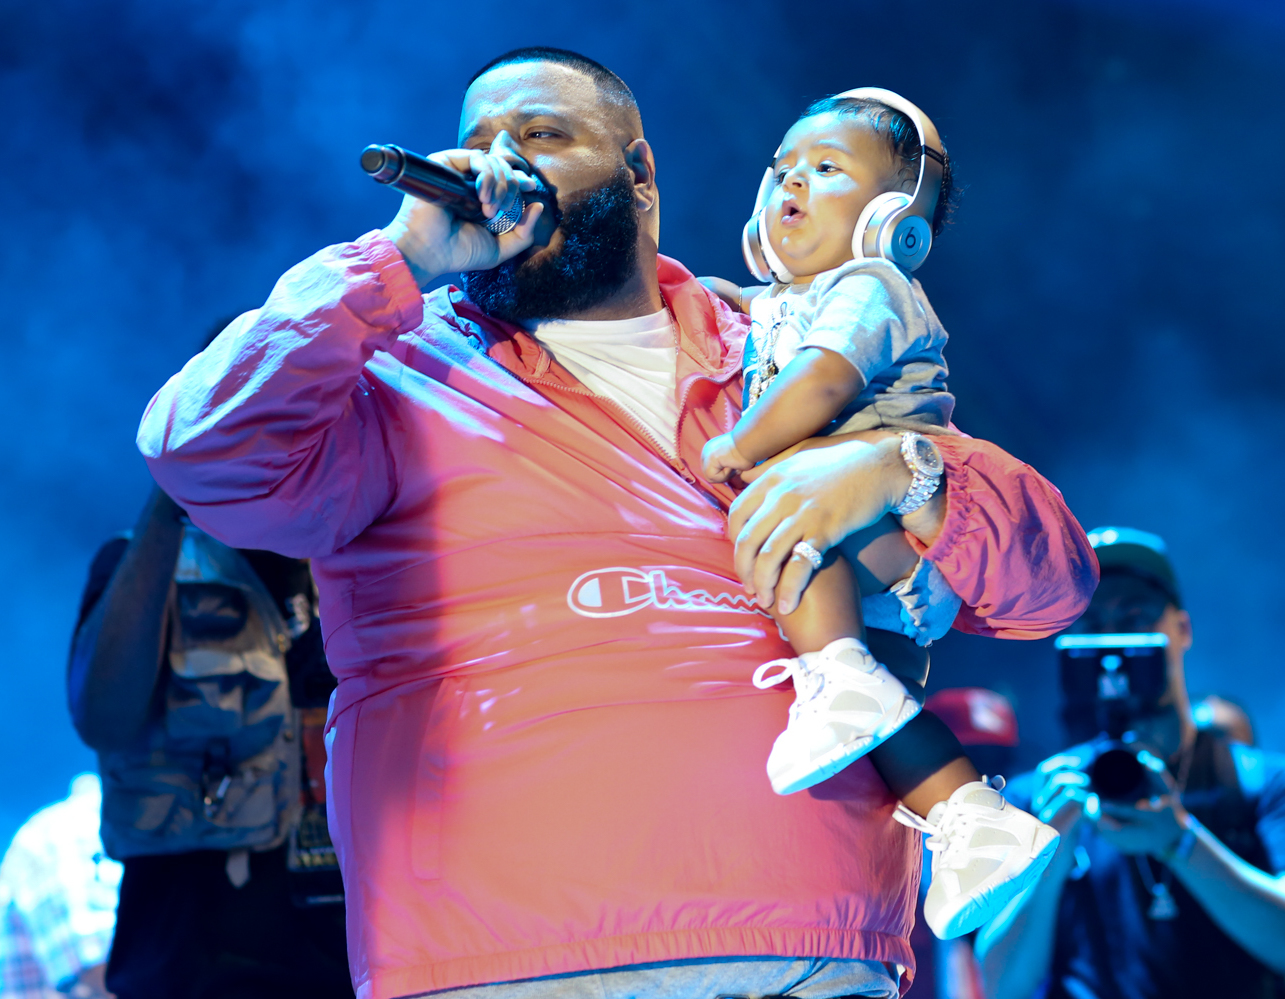 Hot 97's Summerjam 2017 at the Metlife Stadium in New Jersey - Performances  Featuring: DJ Khaled, Asad Khaled Where: East Rutherford, New Jersey, United States When: 11 Jun 2017 Credit: WENN.com